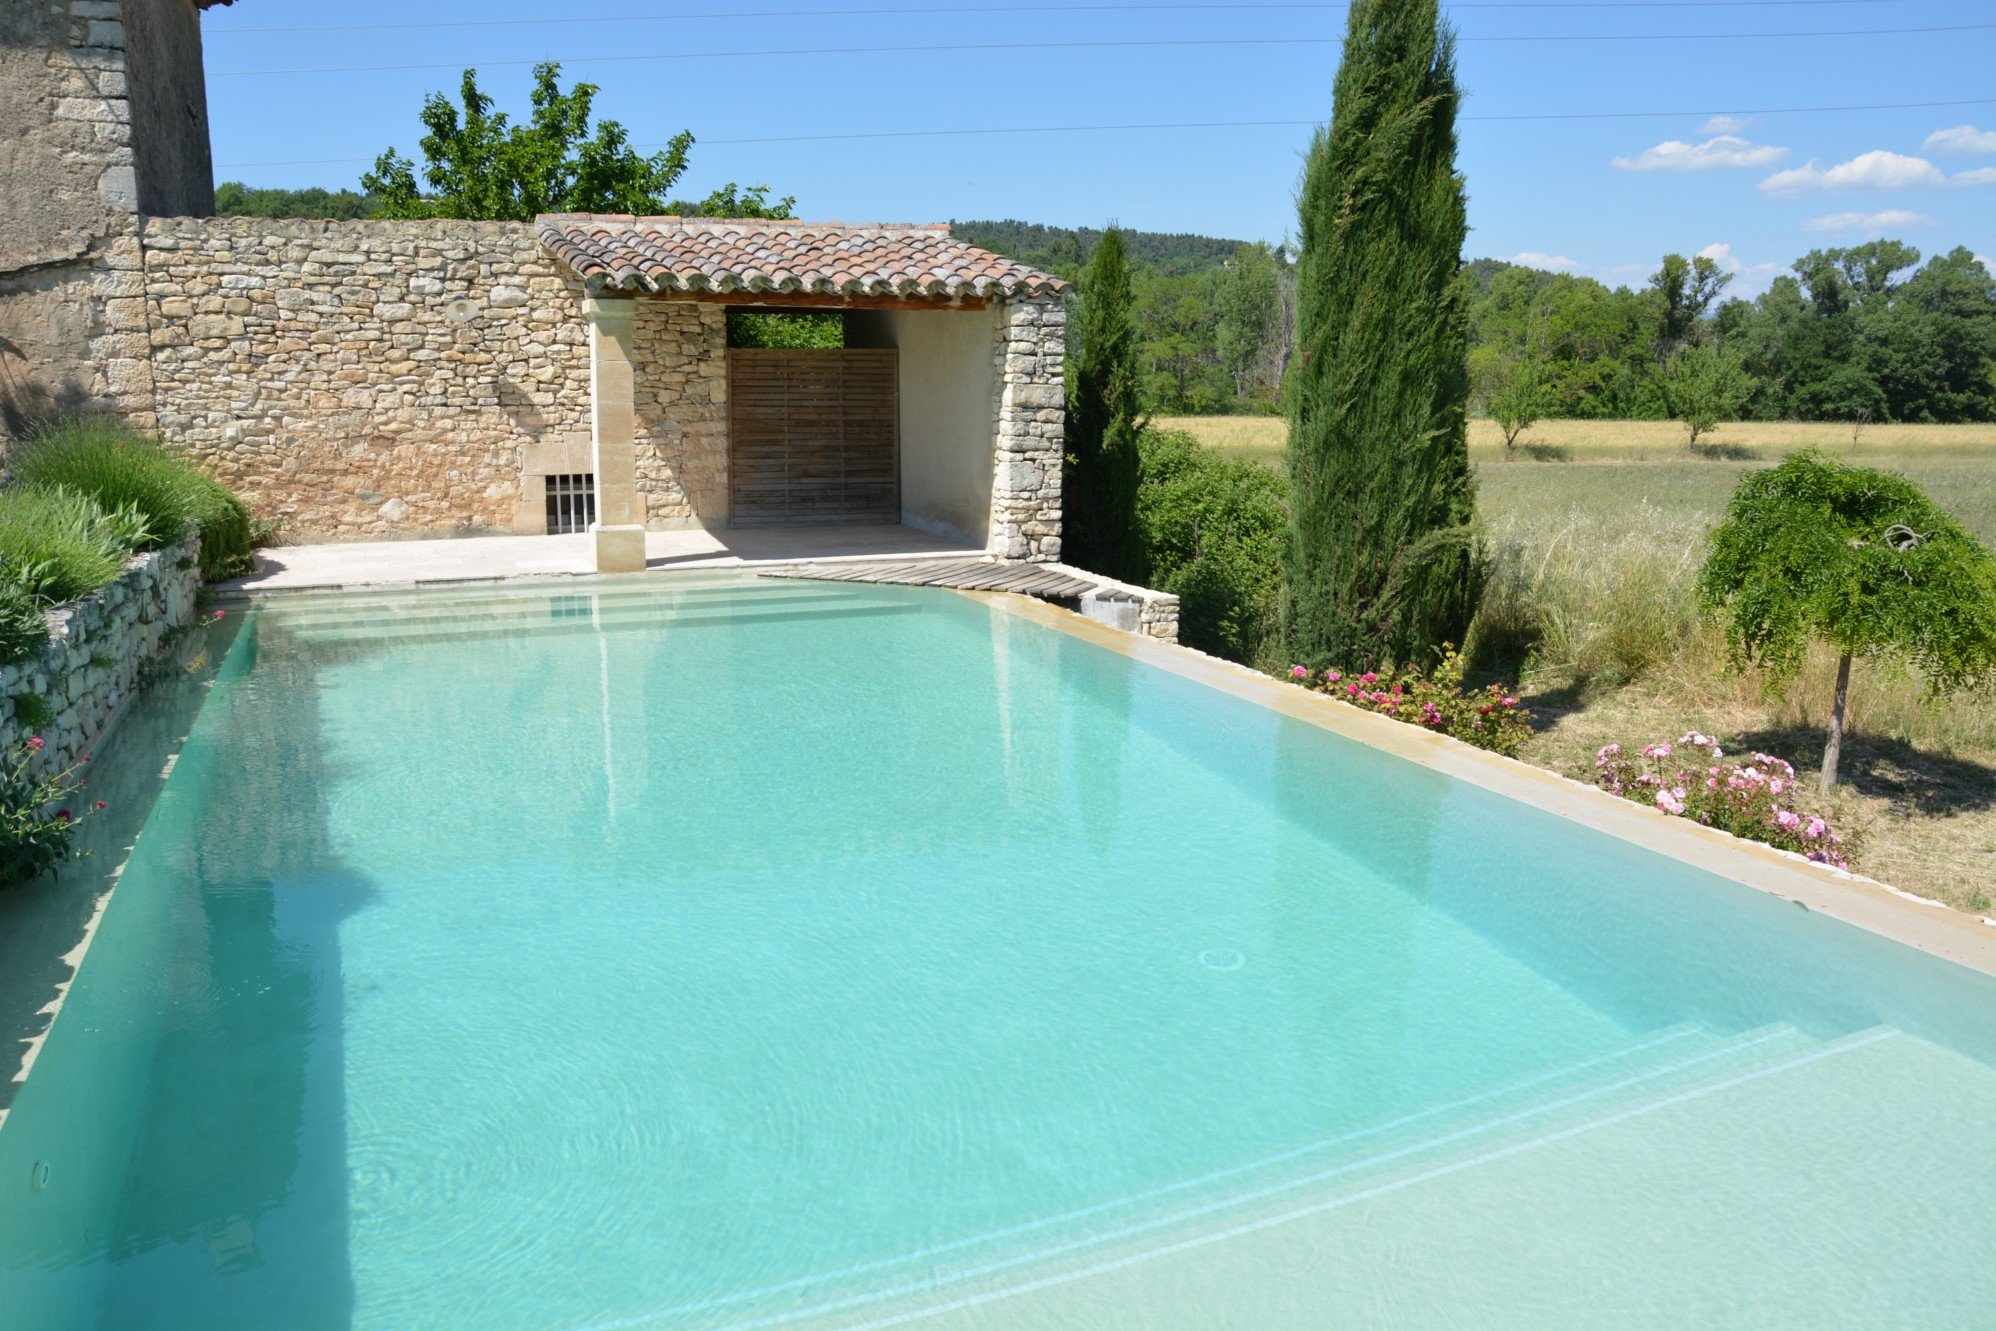 Property with pool for sale in Luberon by ROSIER